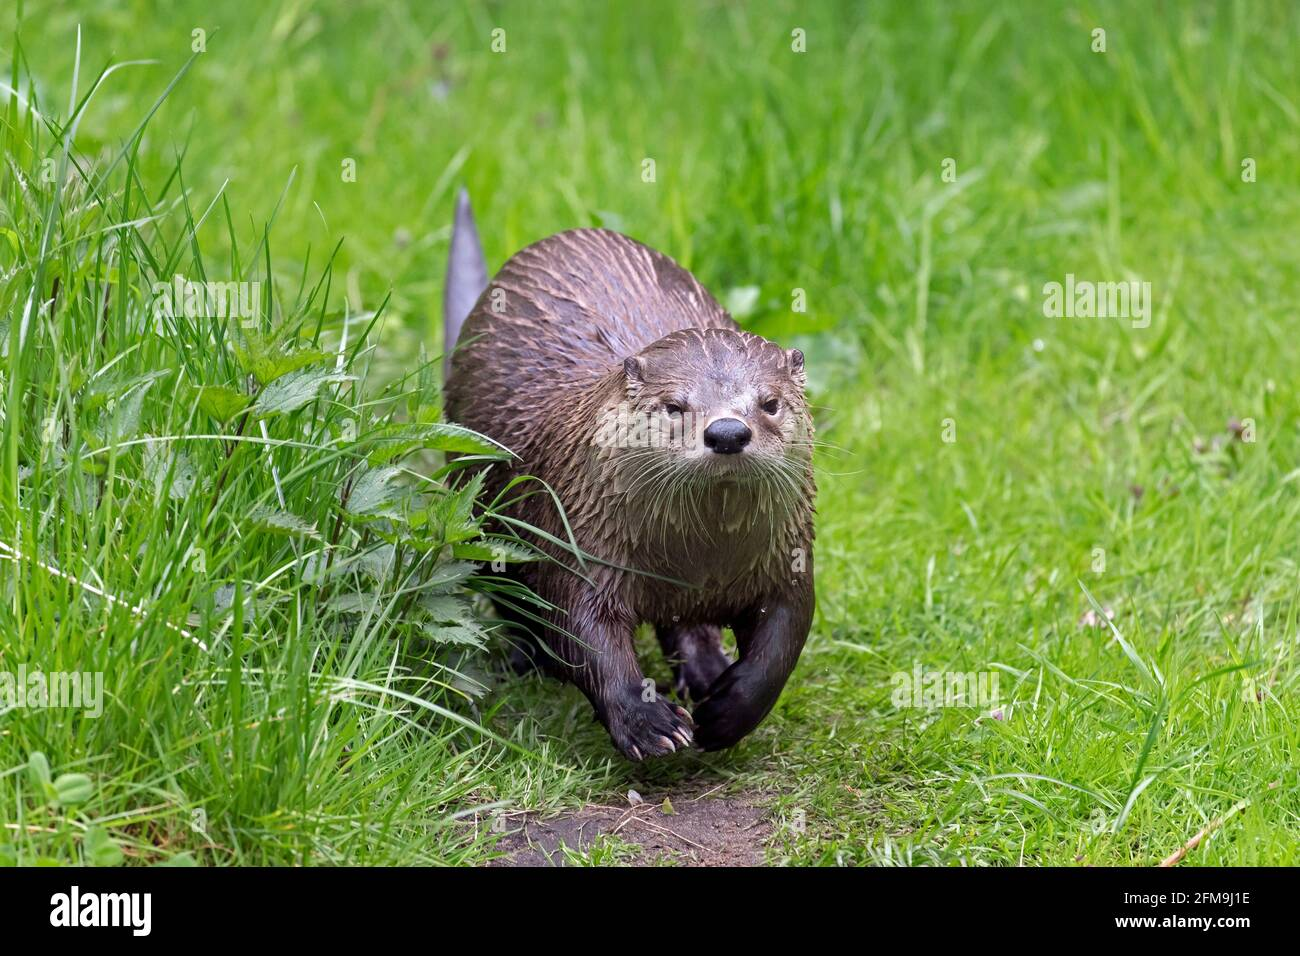 Eurasian otter / European river otter (Lutra lutra) running over land in meadow / grassland on river bank / riverbank in spring Stock Photo